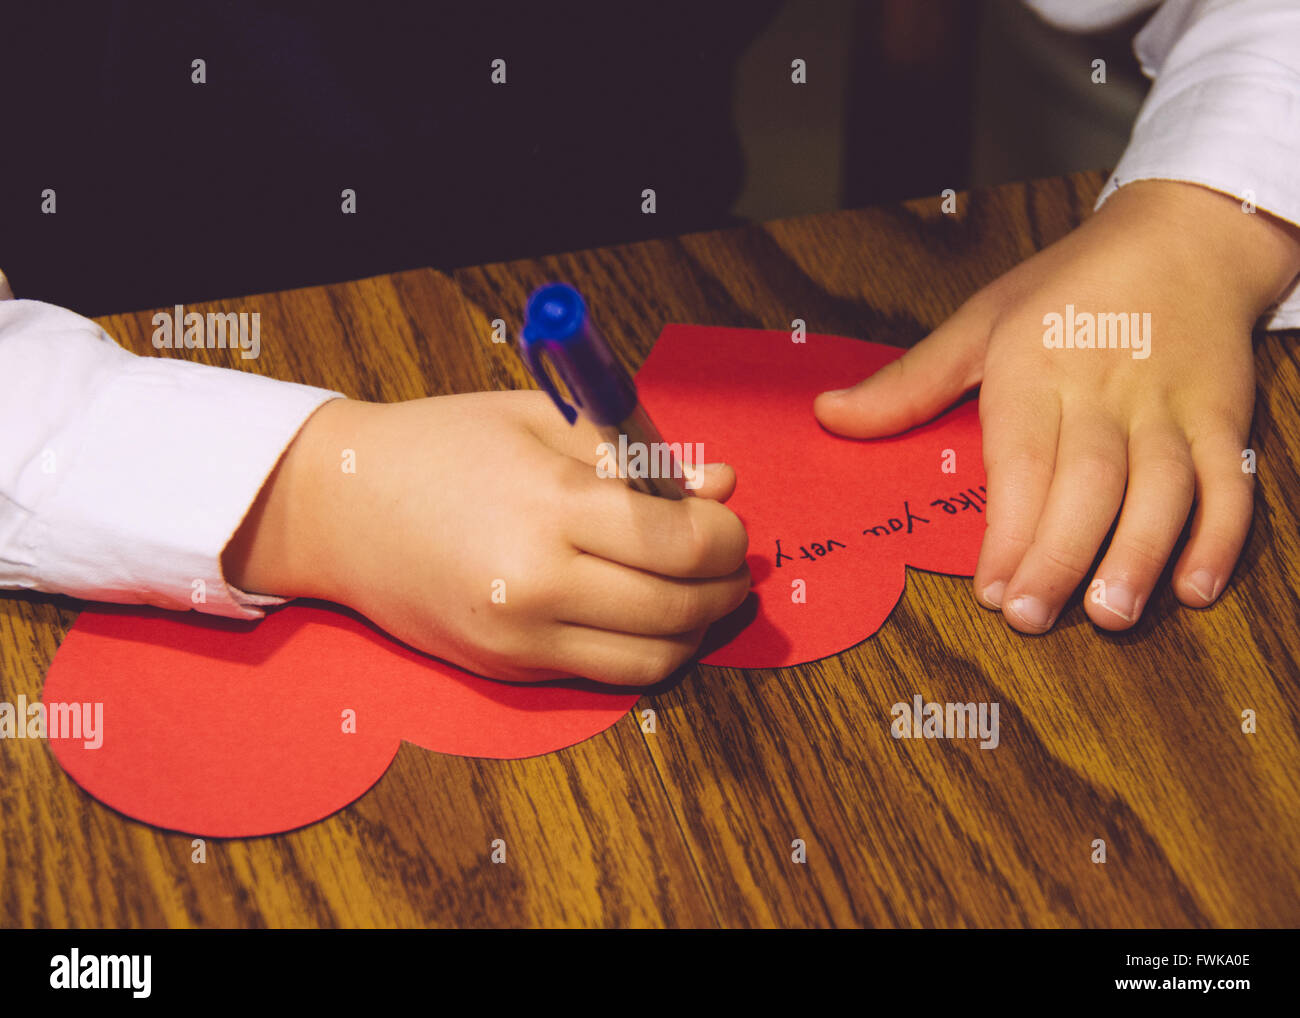 Cropped Image Of Child Writing On Heart Shape Greeting Card On Table - Stock Image